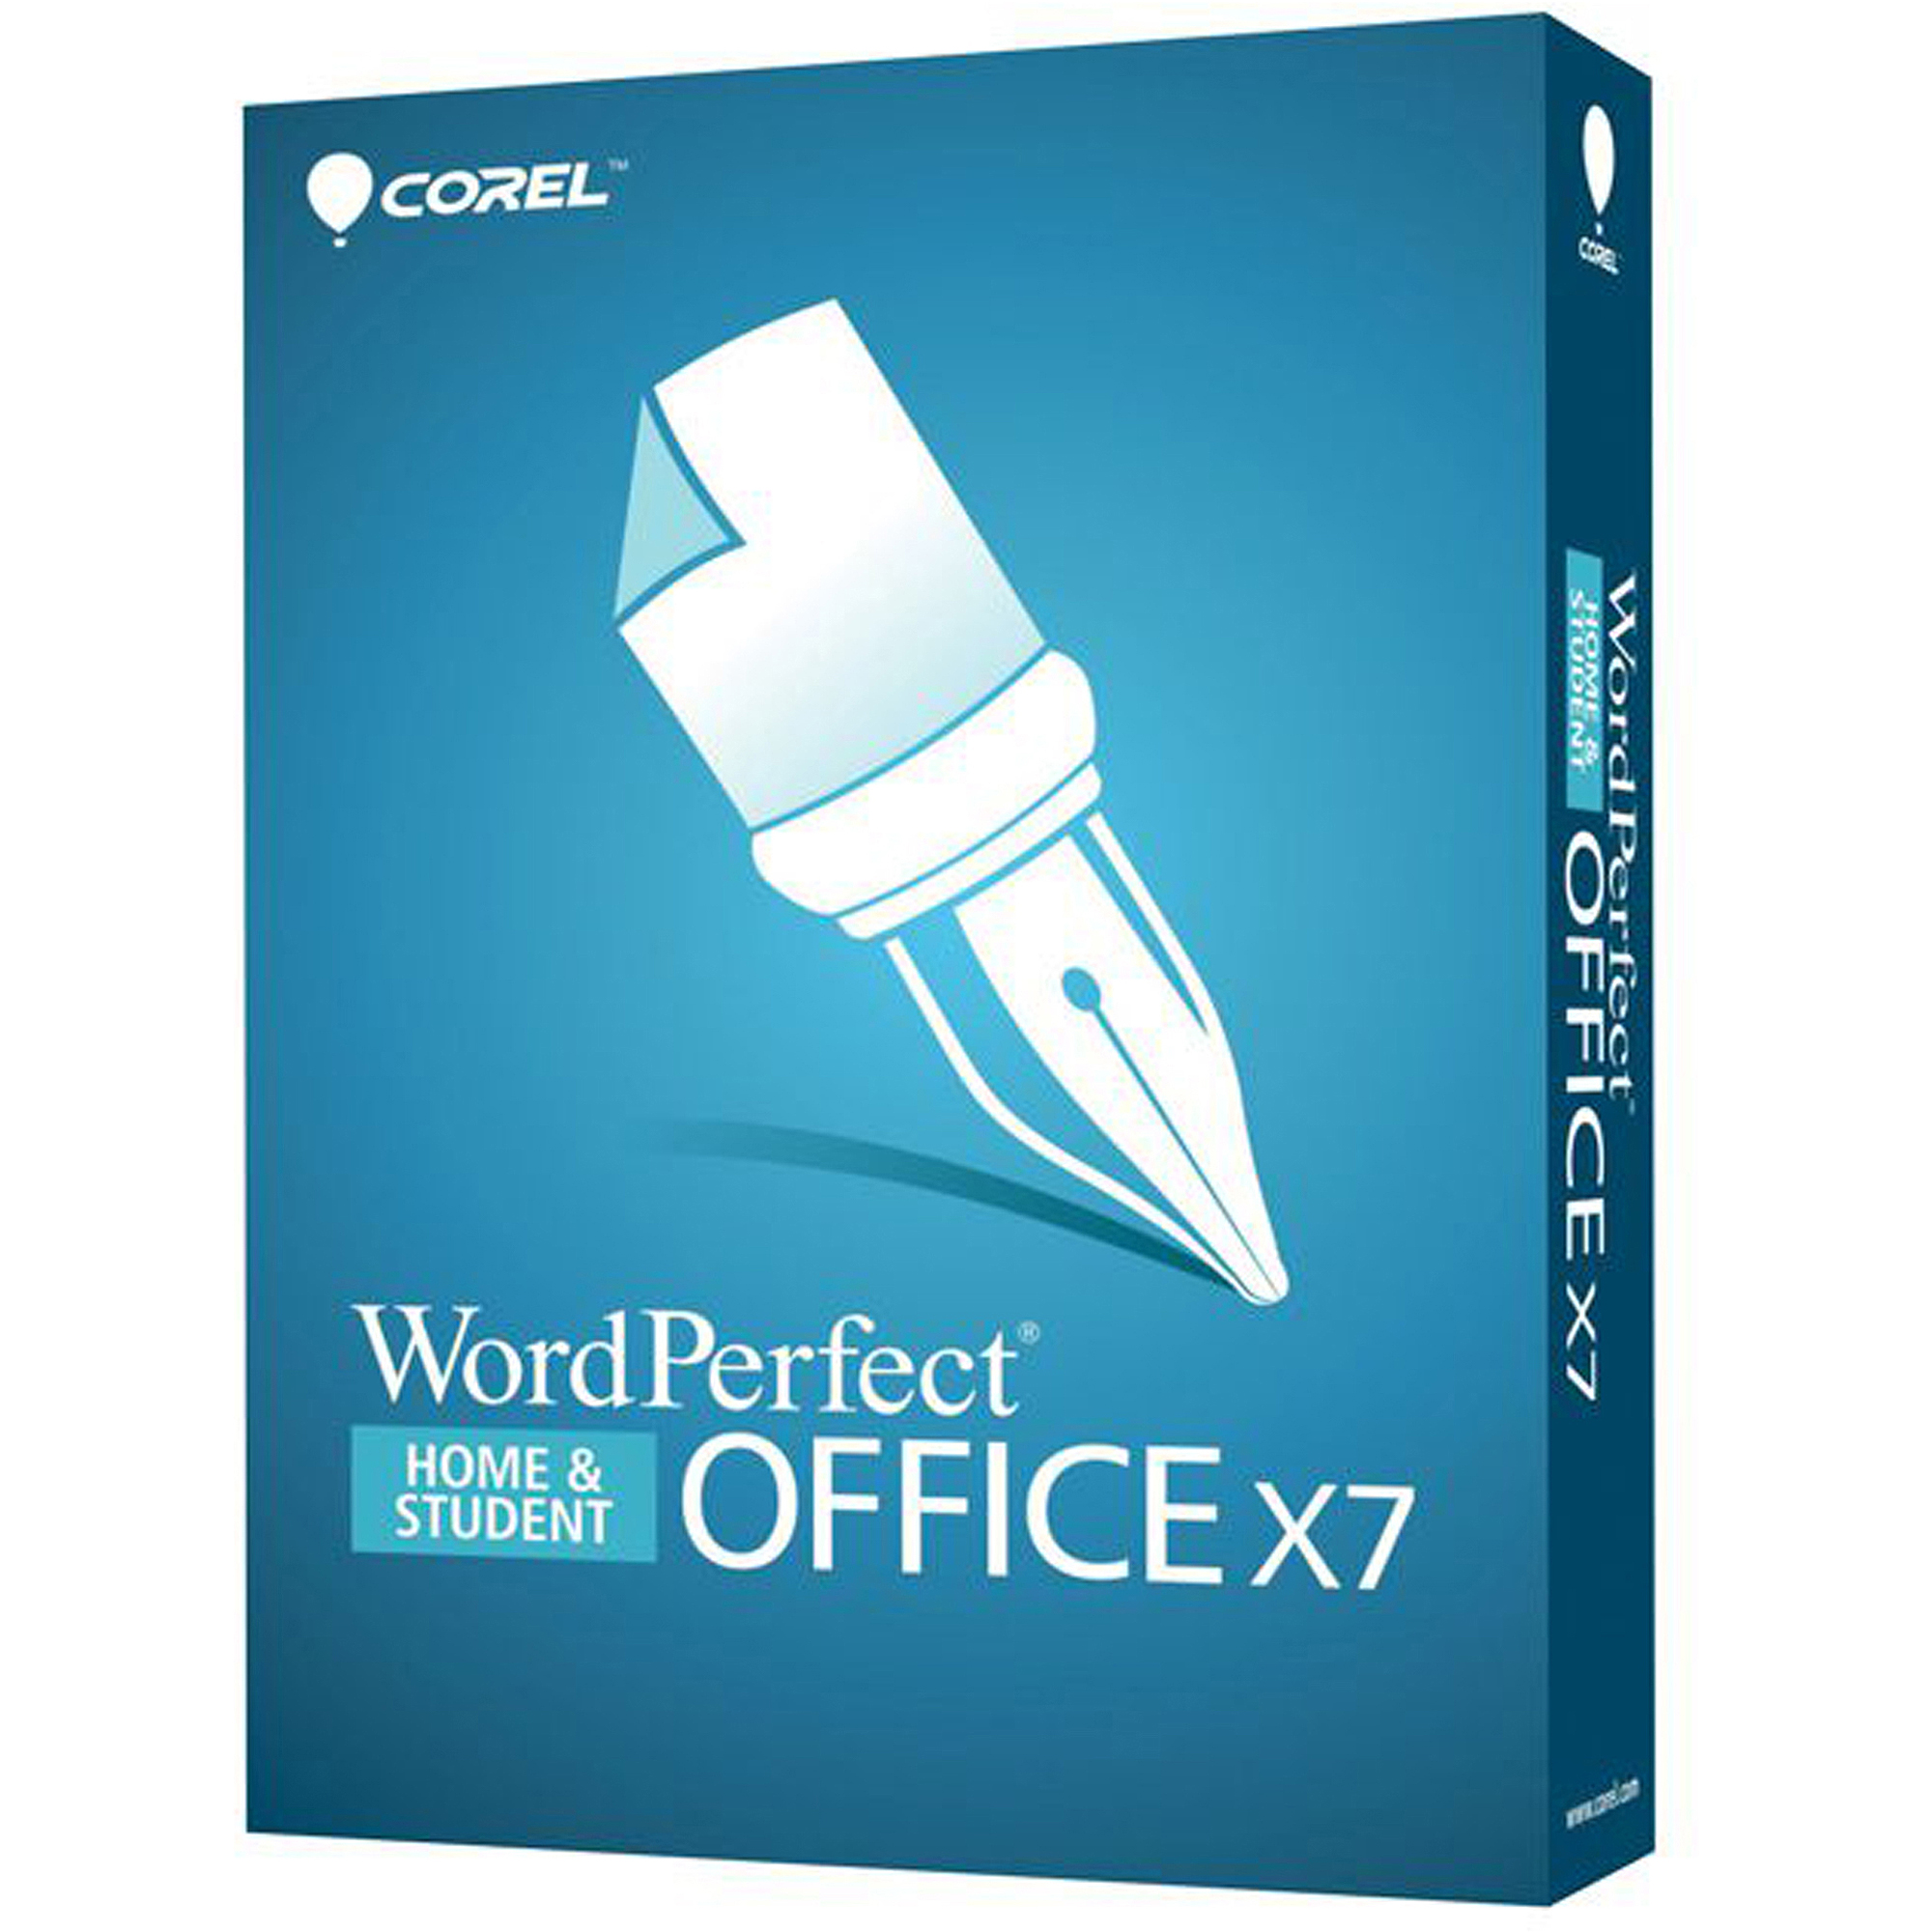 Corel ESDWPX7HSEN WordPerfect Office X7 Home and Student (PC)(Digital Code)